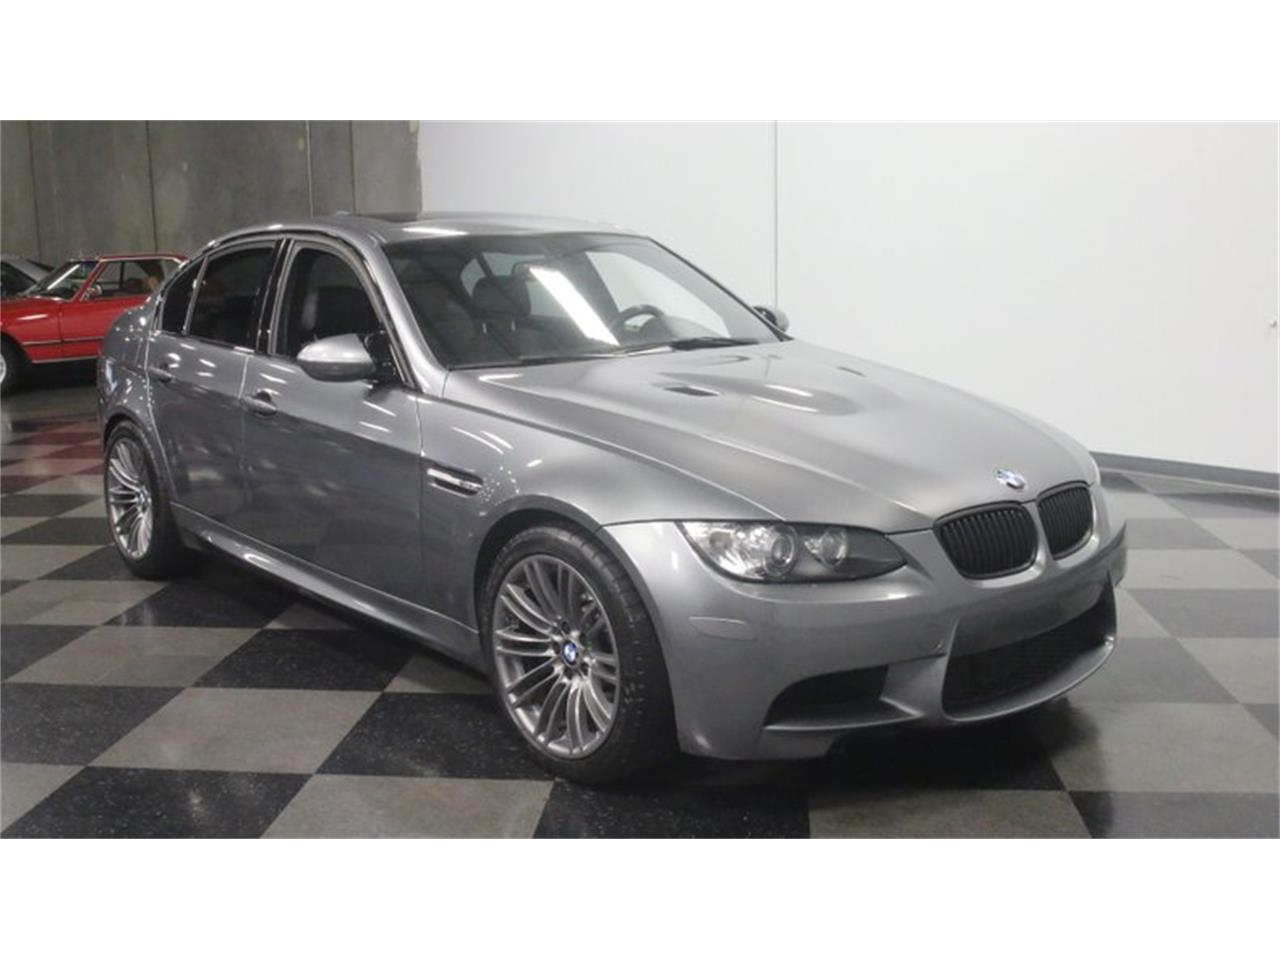 2010 BMW M3 for sale in Lithia Springs, GA – photo 17